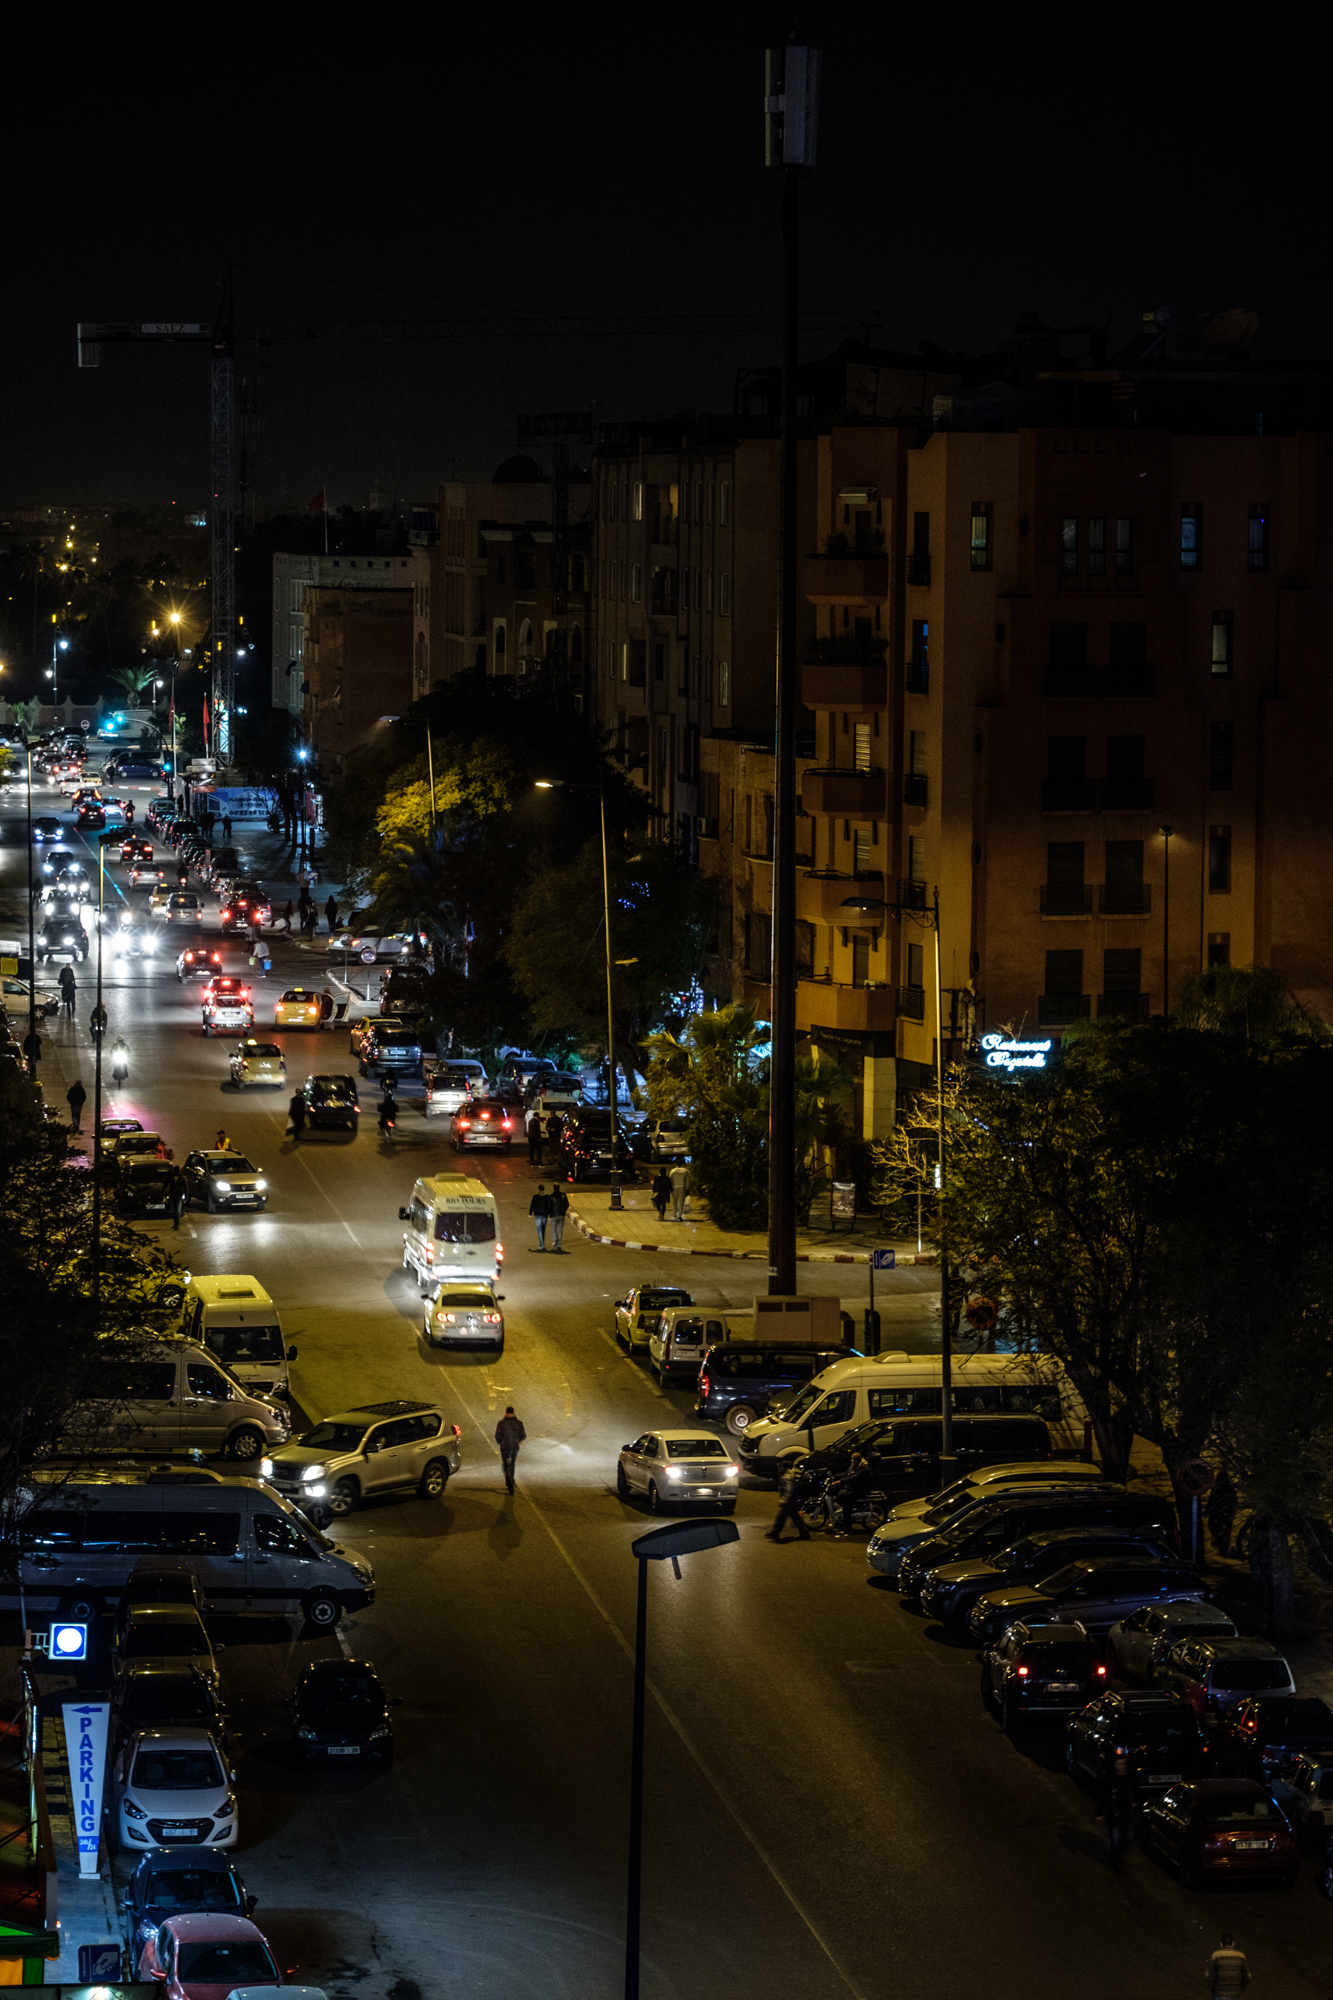 The streets of Marrakech at night from Almas Hotel